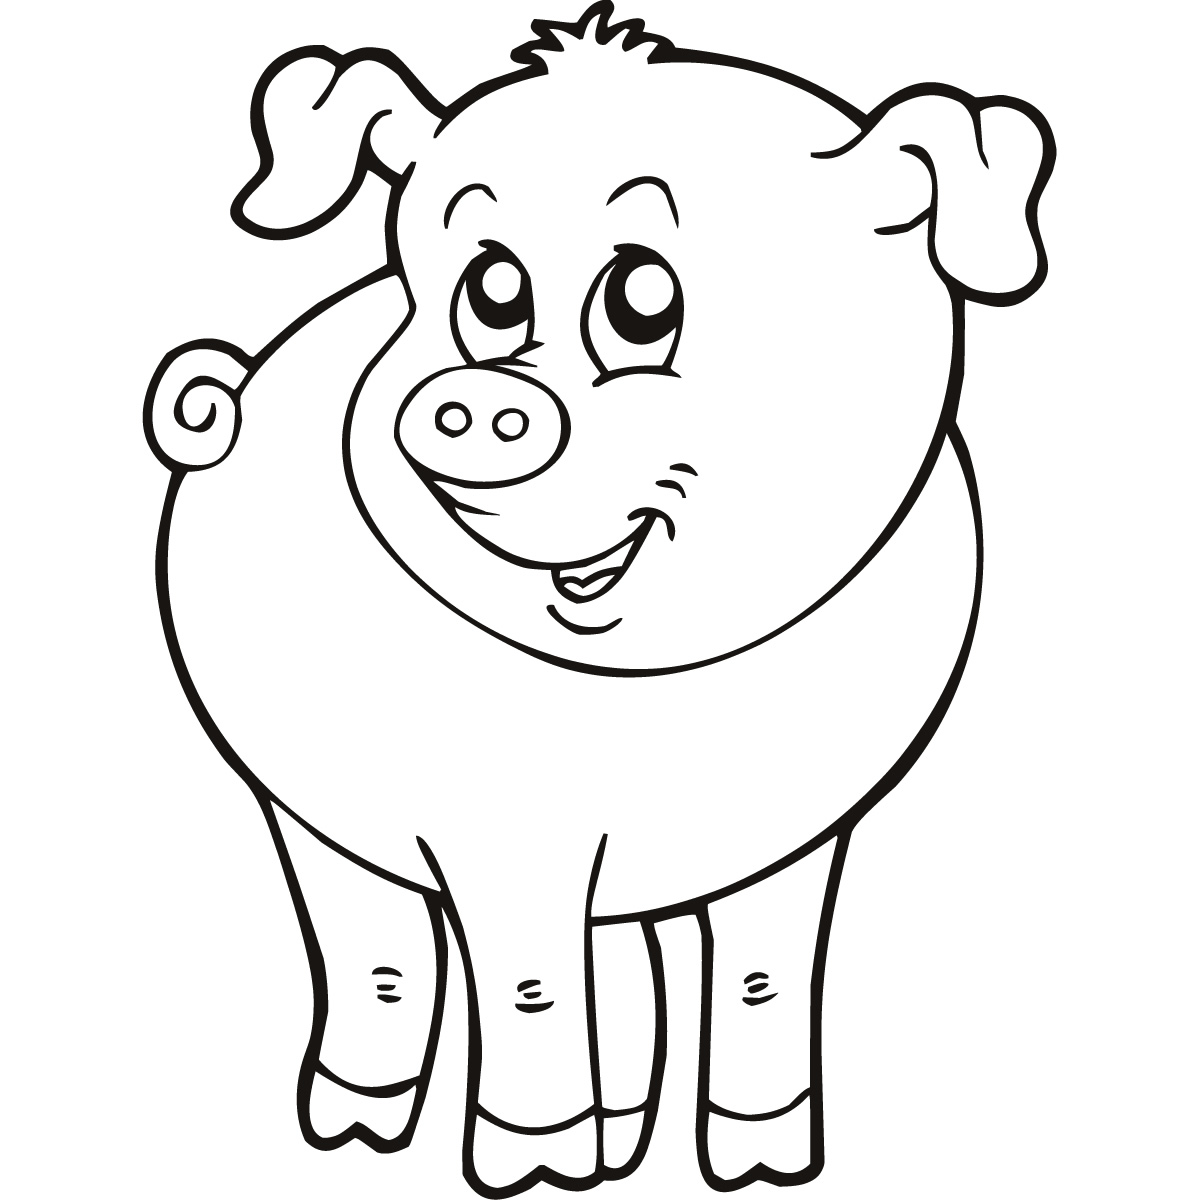 Simple Line Drawings Of Animals